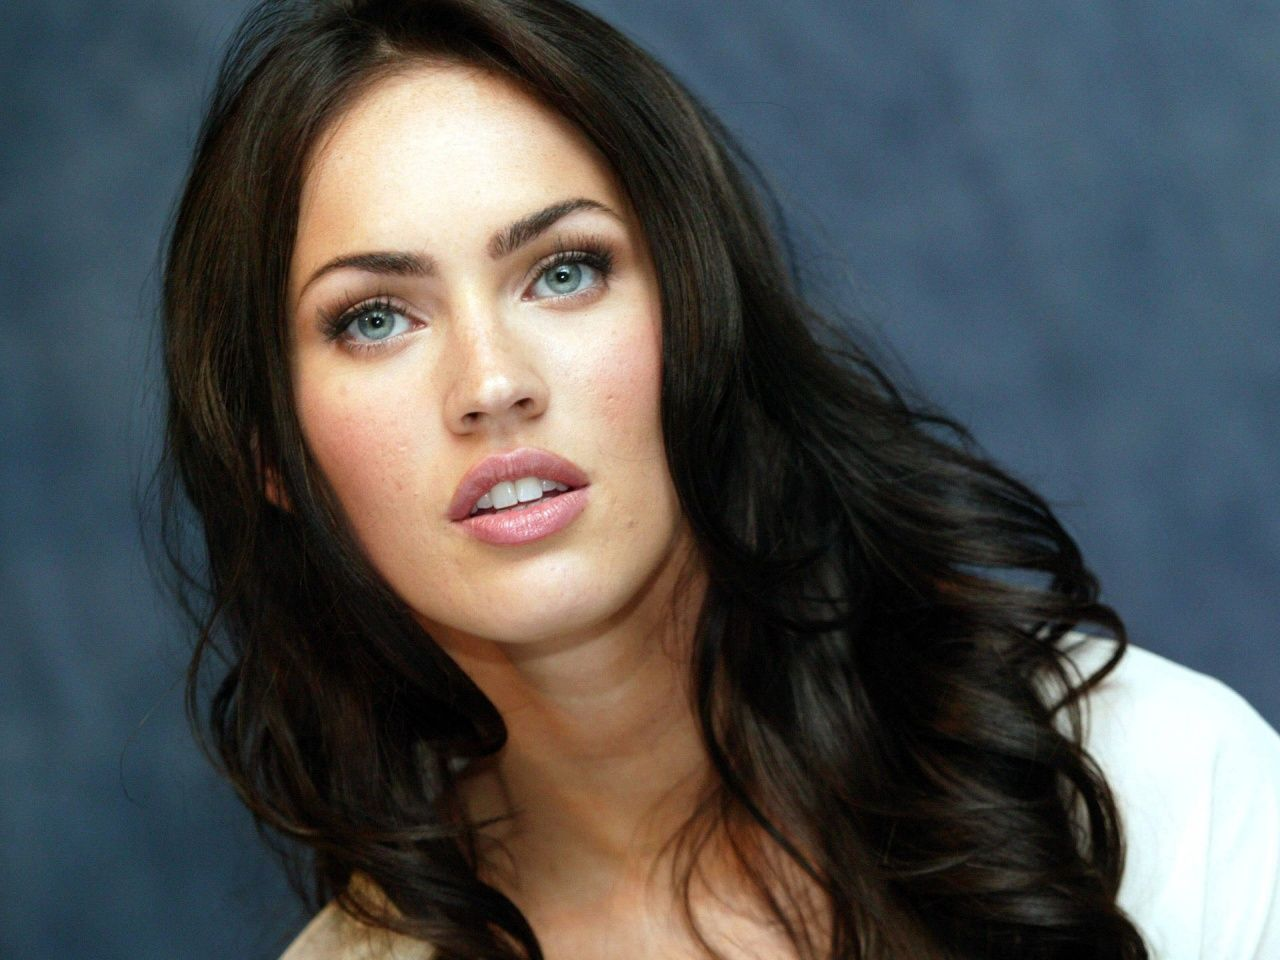 Megan Fox | TAXISTA HEROE DE QUITO SALVATORE RENEGADO EN ECUADOR ...